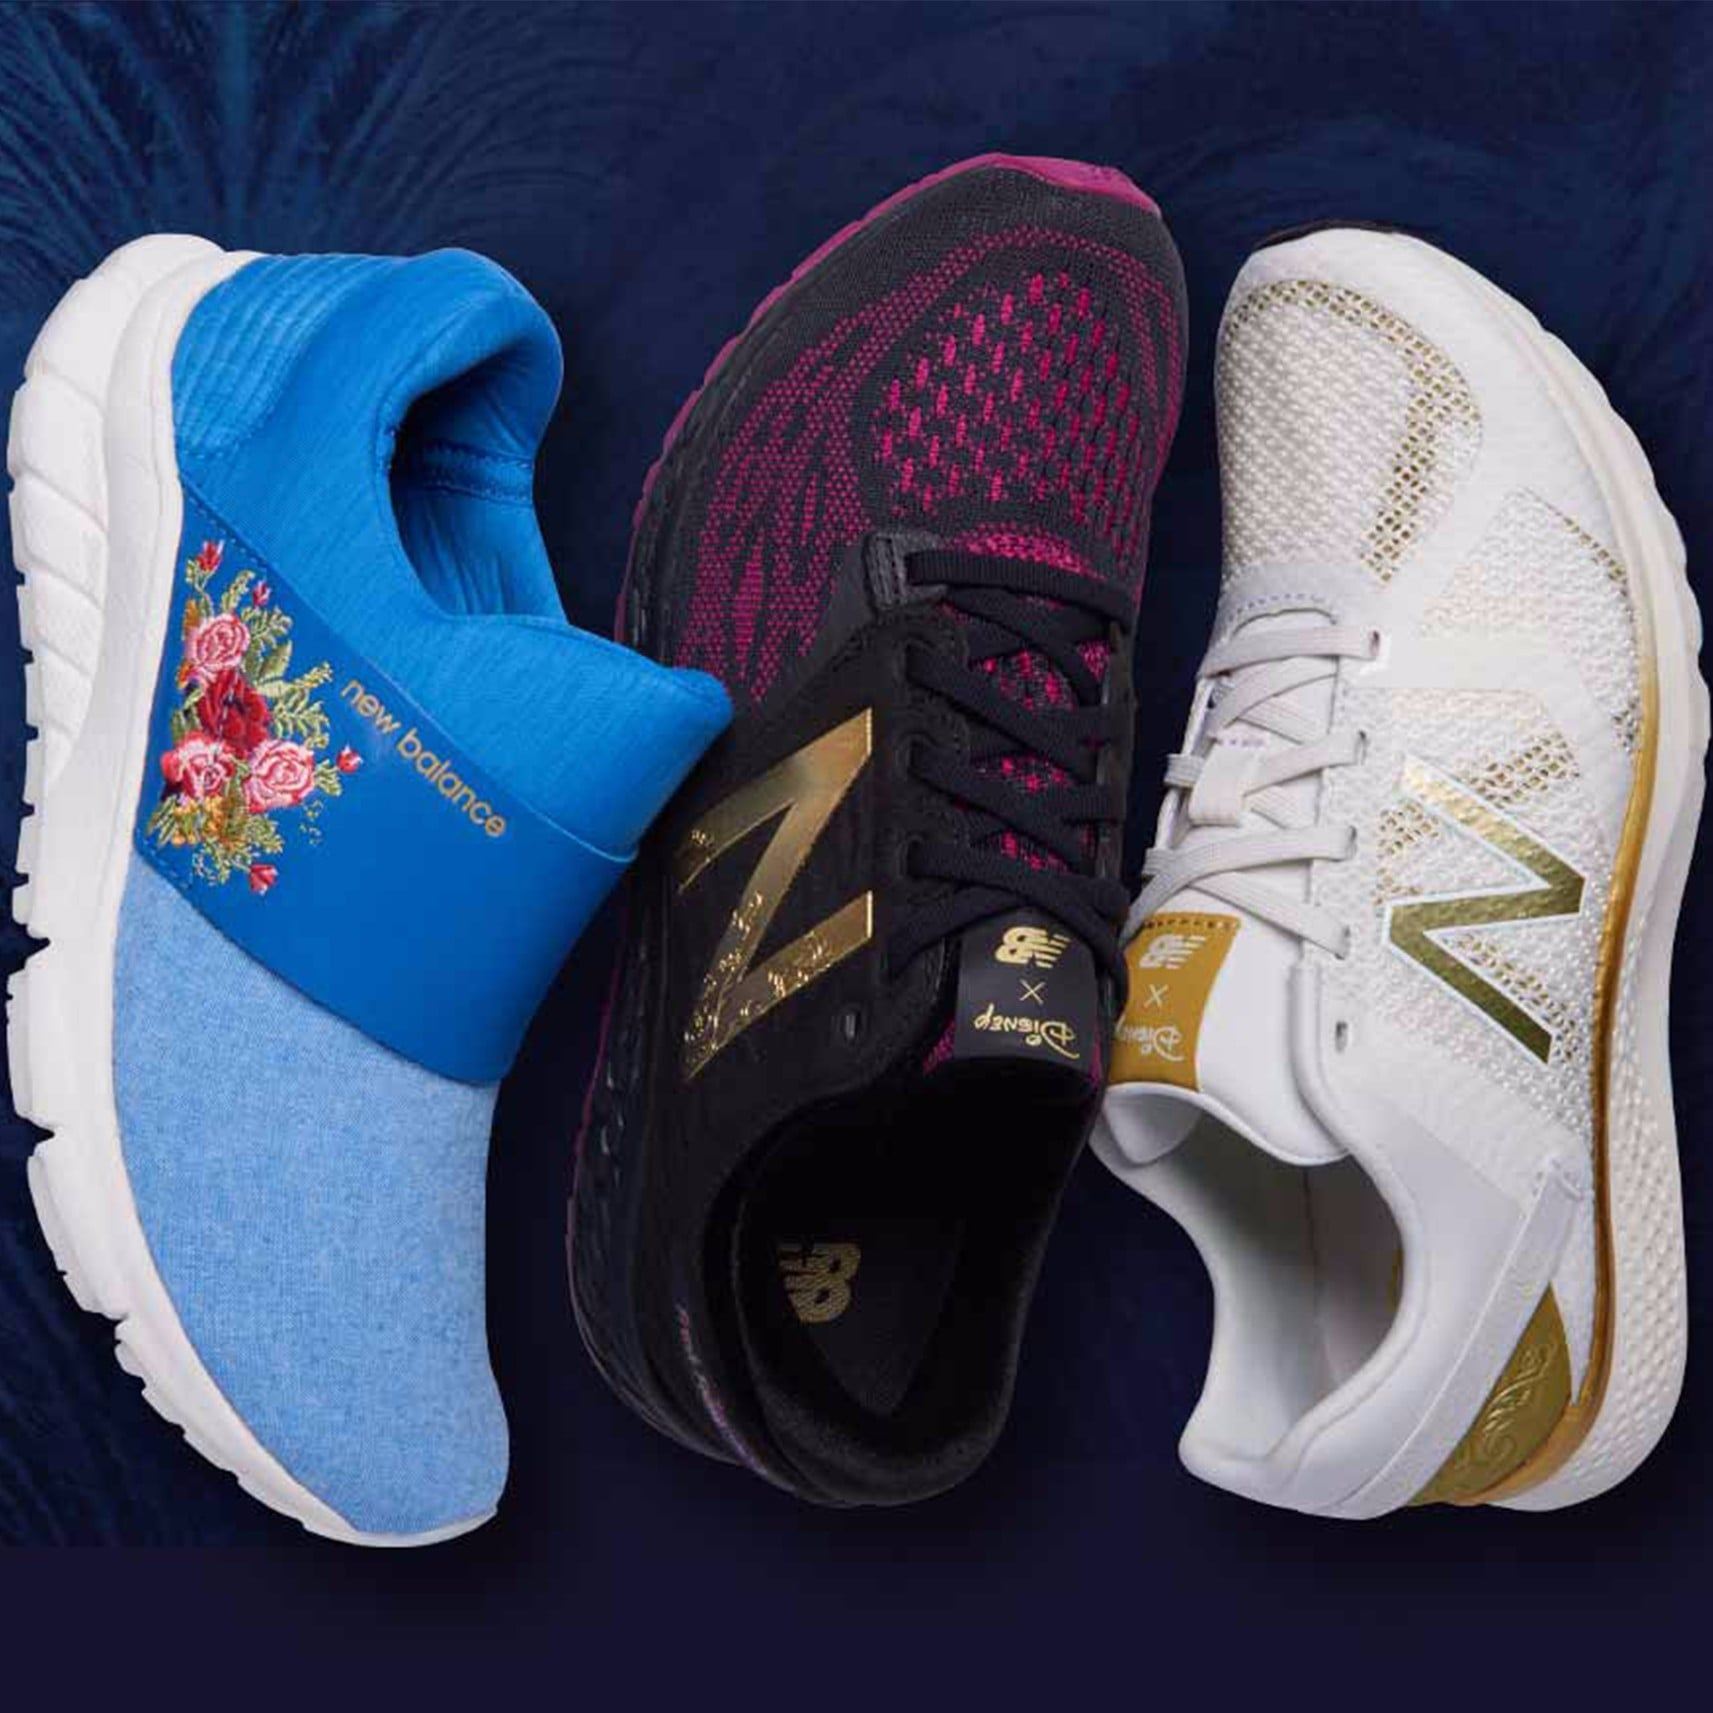 new balance beauty and the beast running shoes fitness